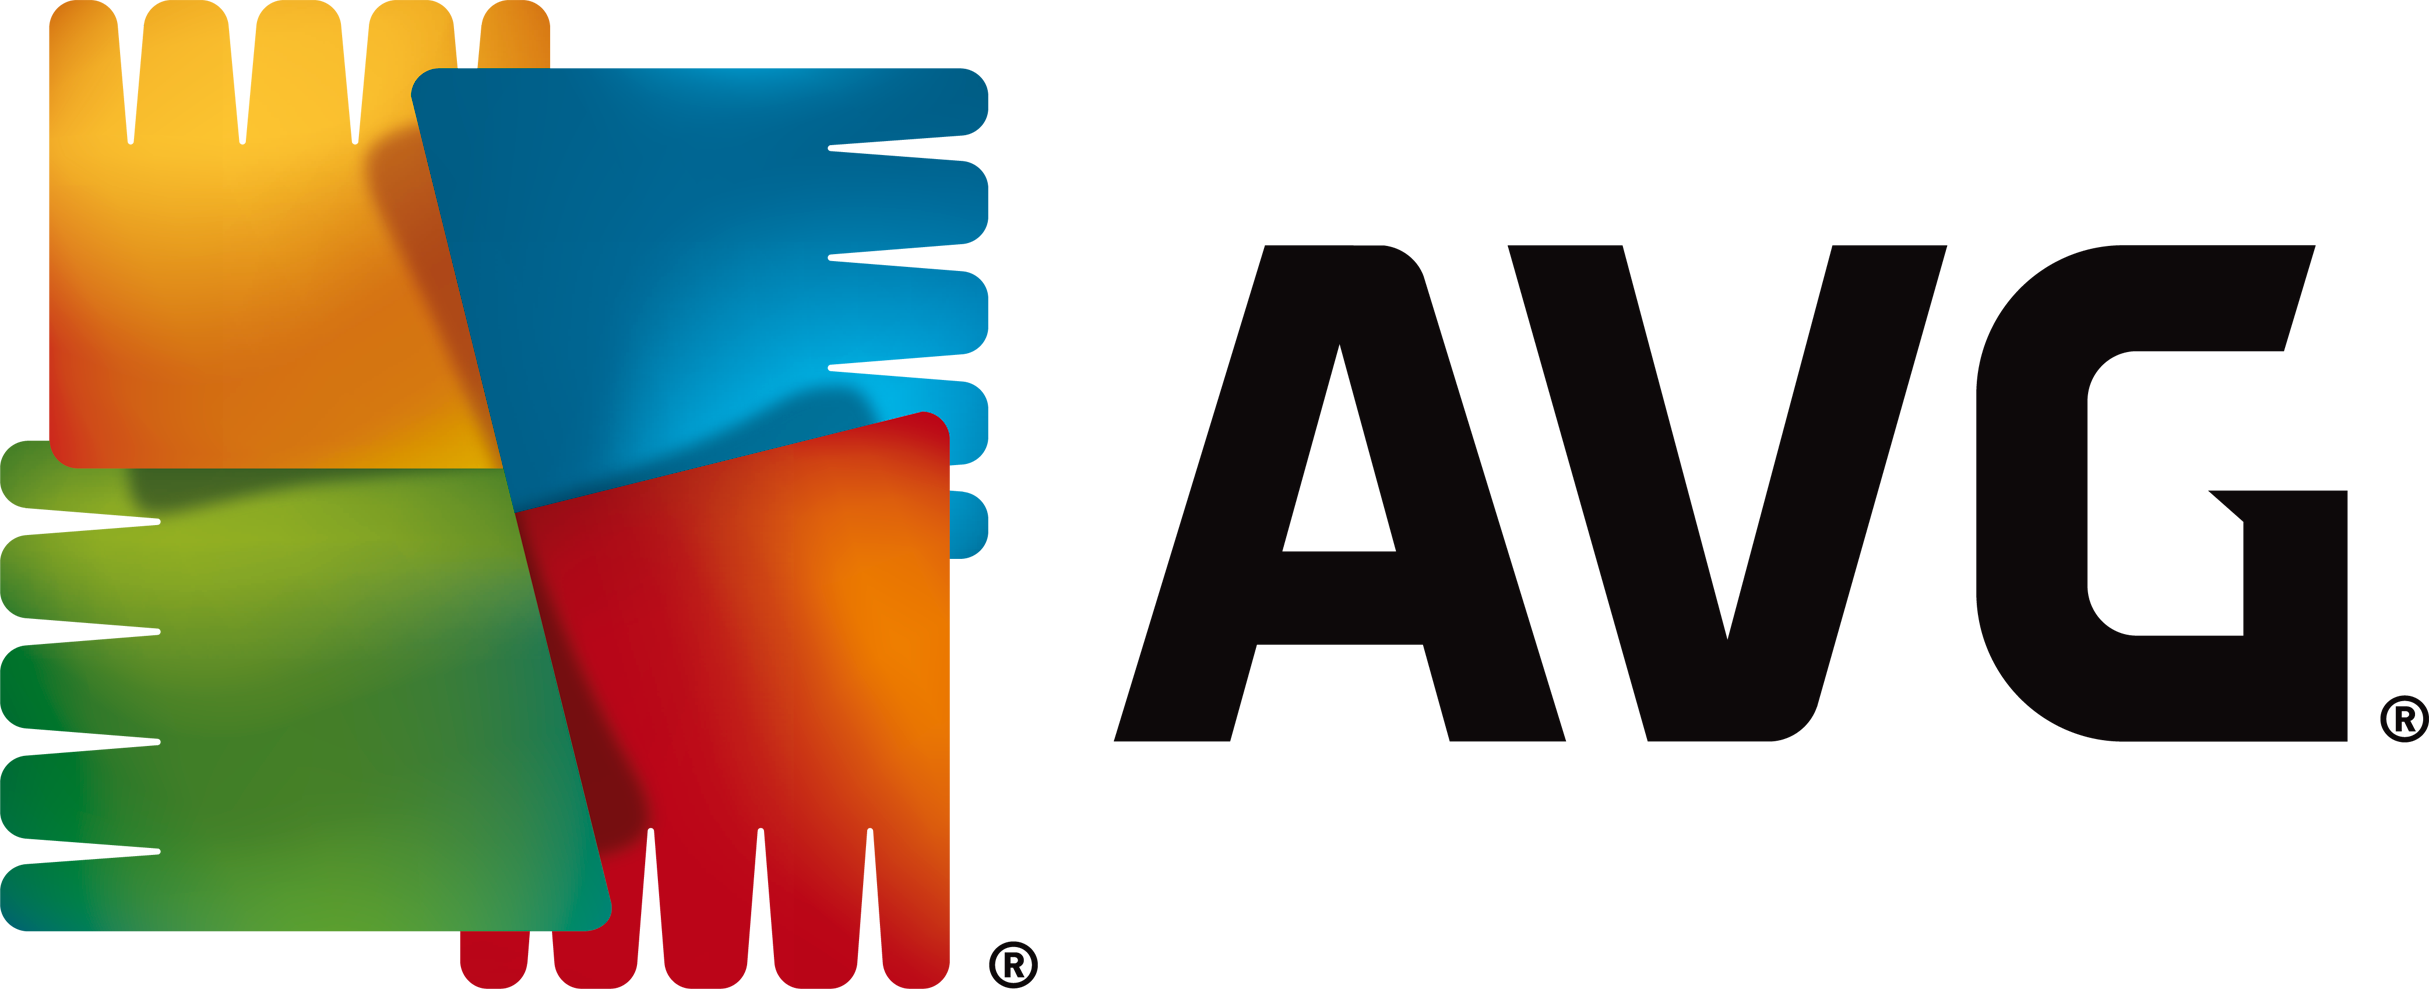 AVG Technologies NV (AVG)